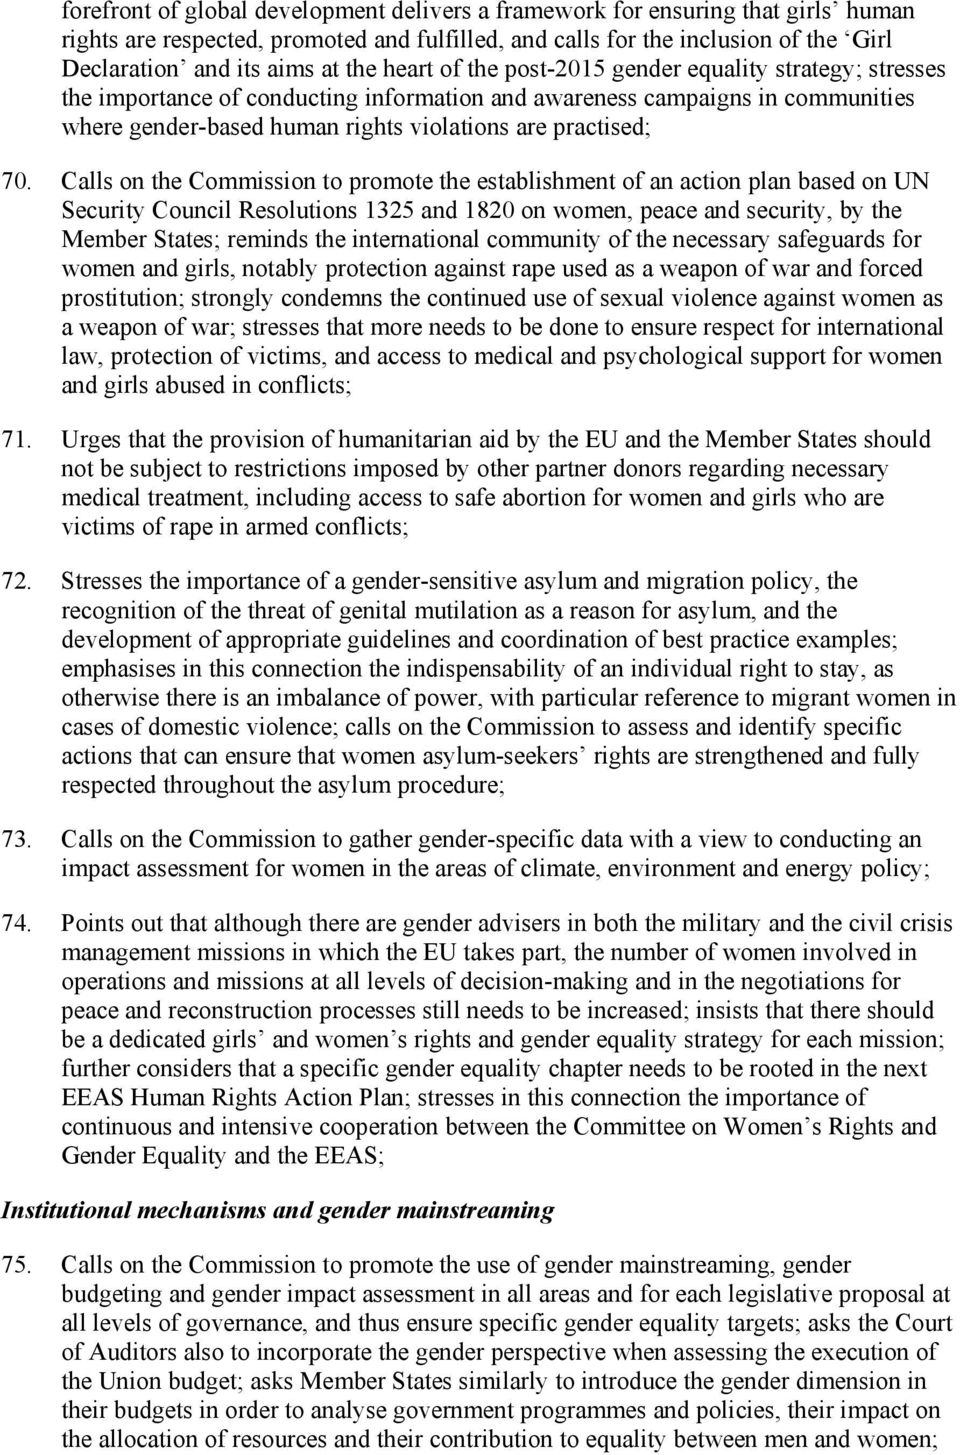 70. Calls on the Commission to promote the establishment of an action plan based on UN Security Council Resolutions 1325 and 1820 on women, peace and security, by the Member States; reminds the